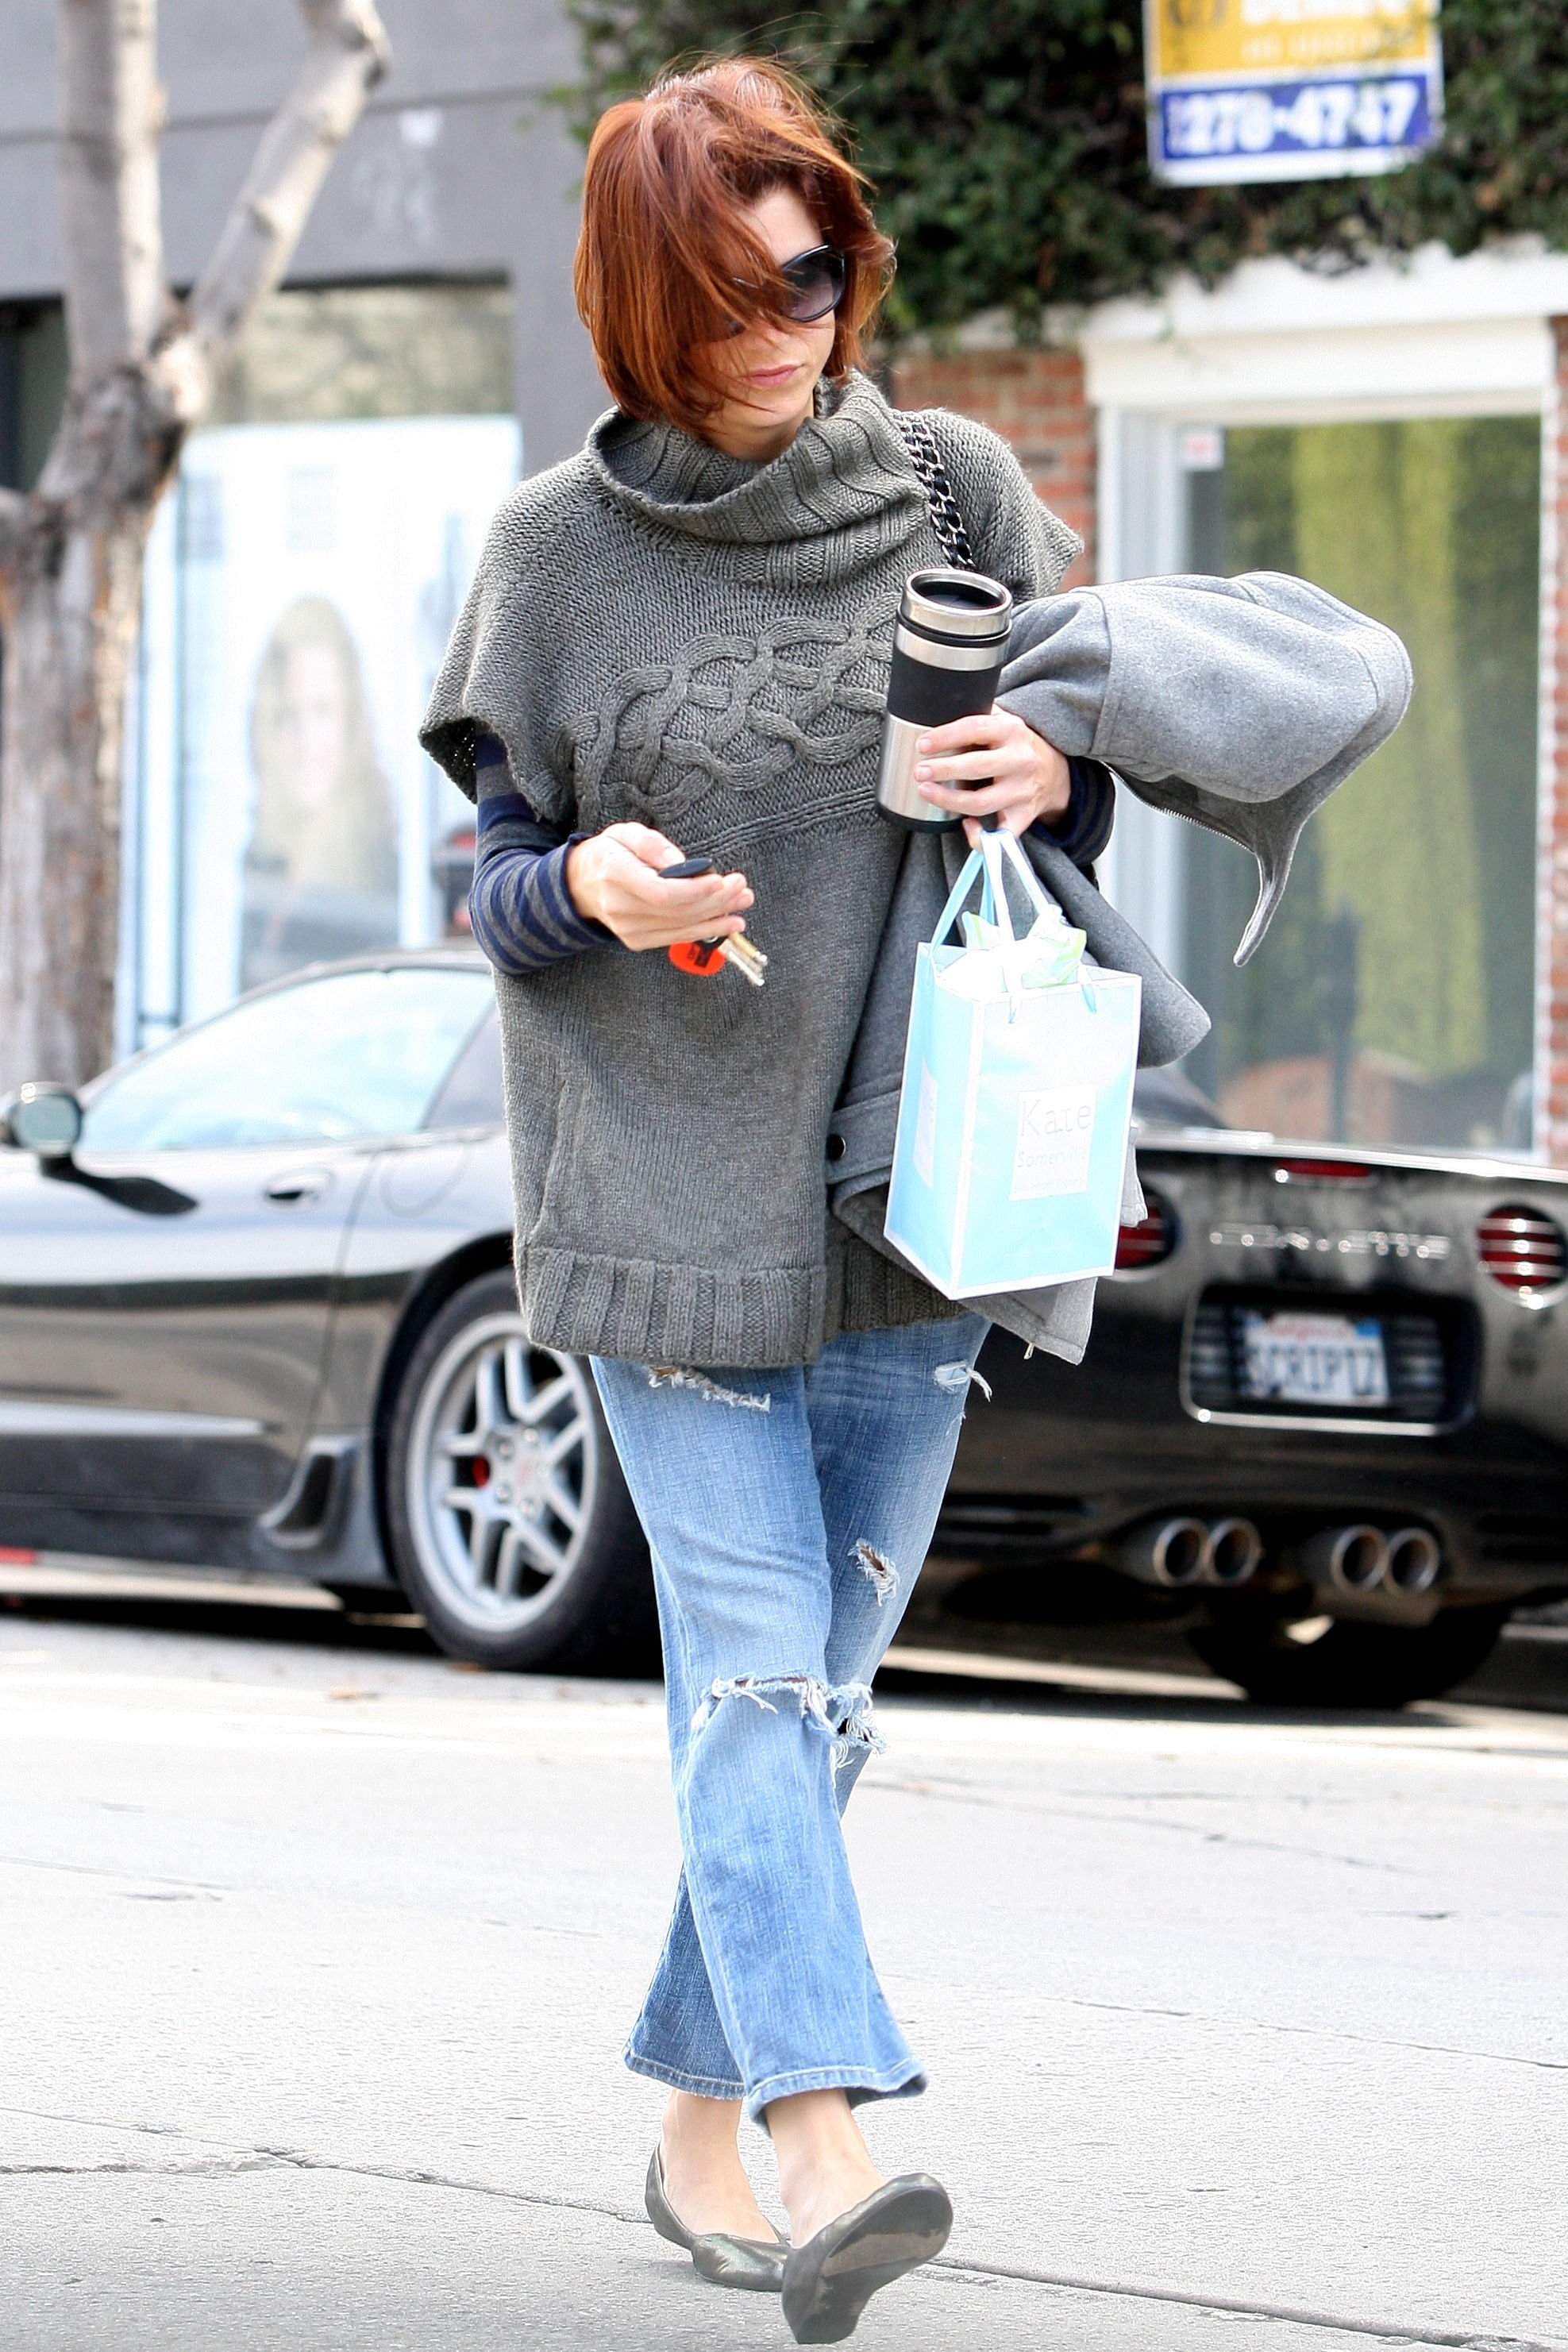 10959_Celebutopia-Kate_Walsh_with_ripped_jeans_in_Hollywood-19_122_450lo.JPG